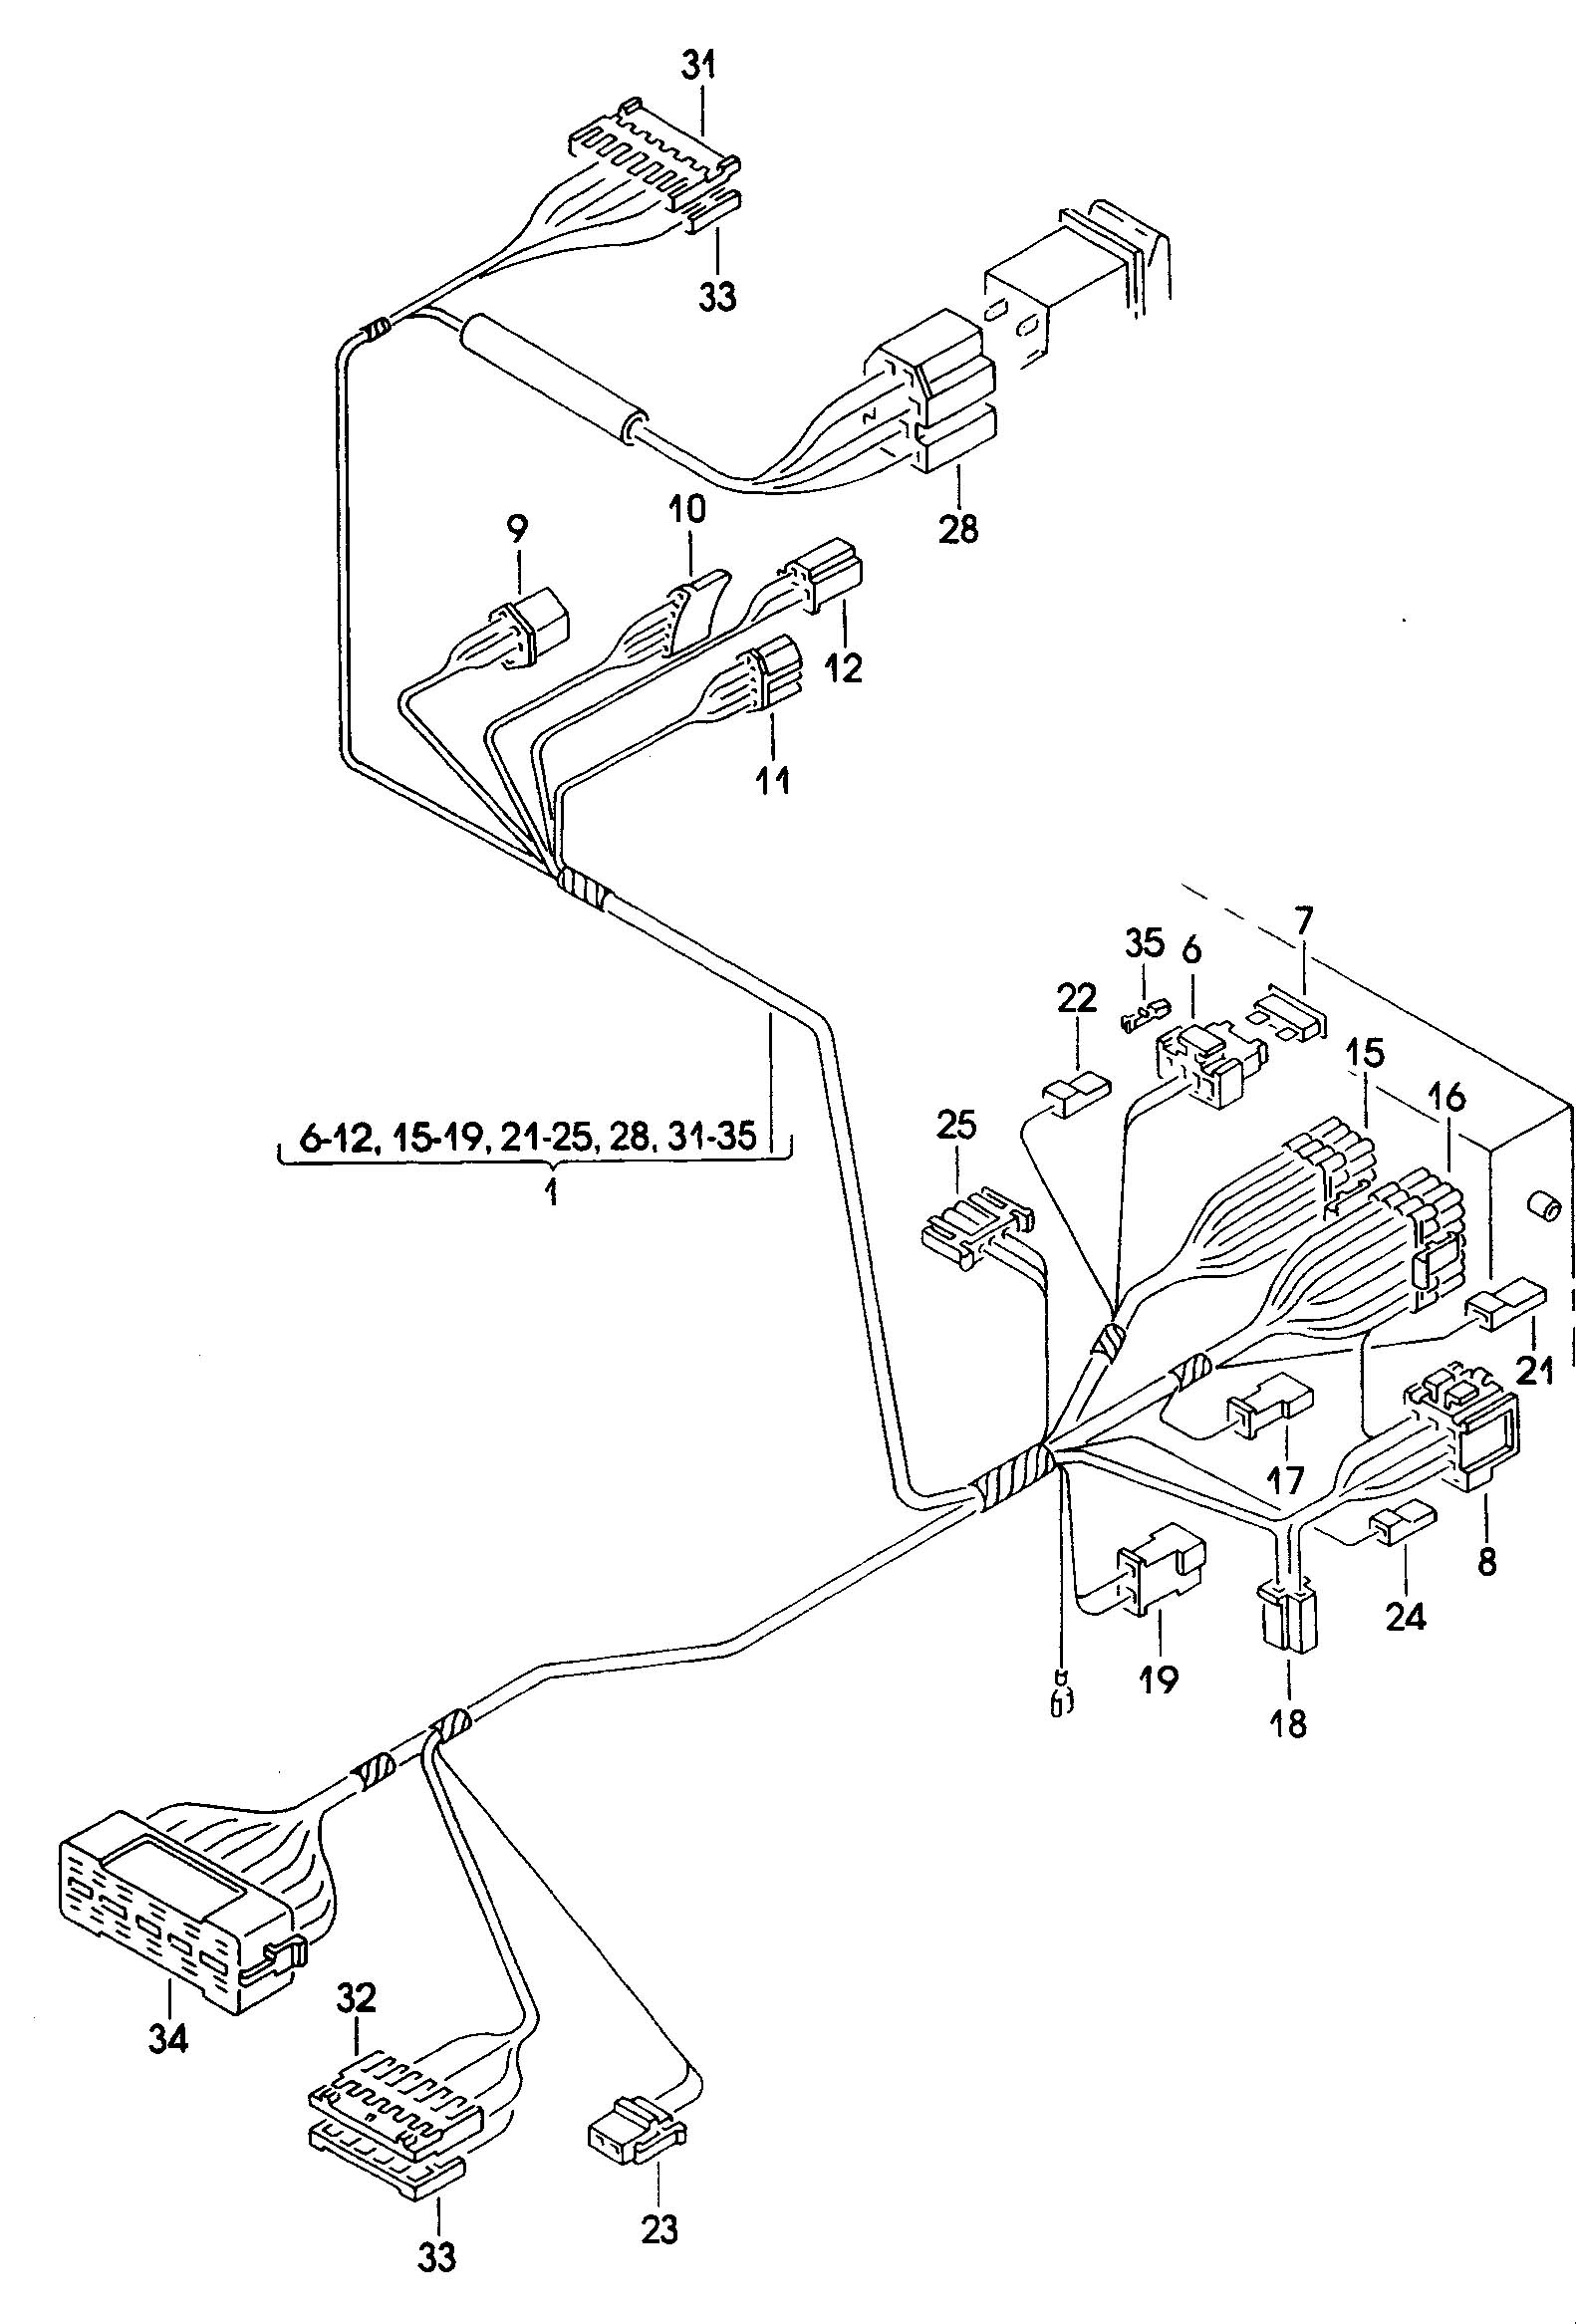 hight resolution of 2006 volkswagen passat air conditioning diagram 2000 passat fuse panel wiring diagram 2006 jetta fuse diagram